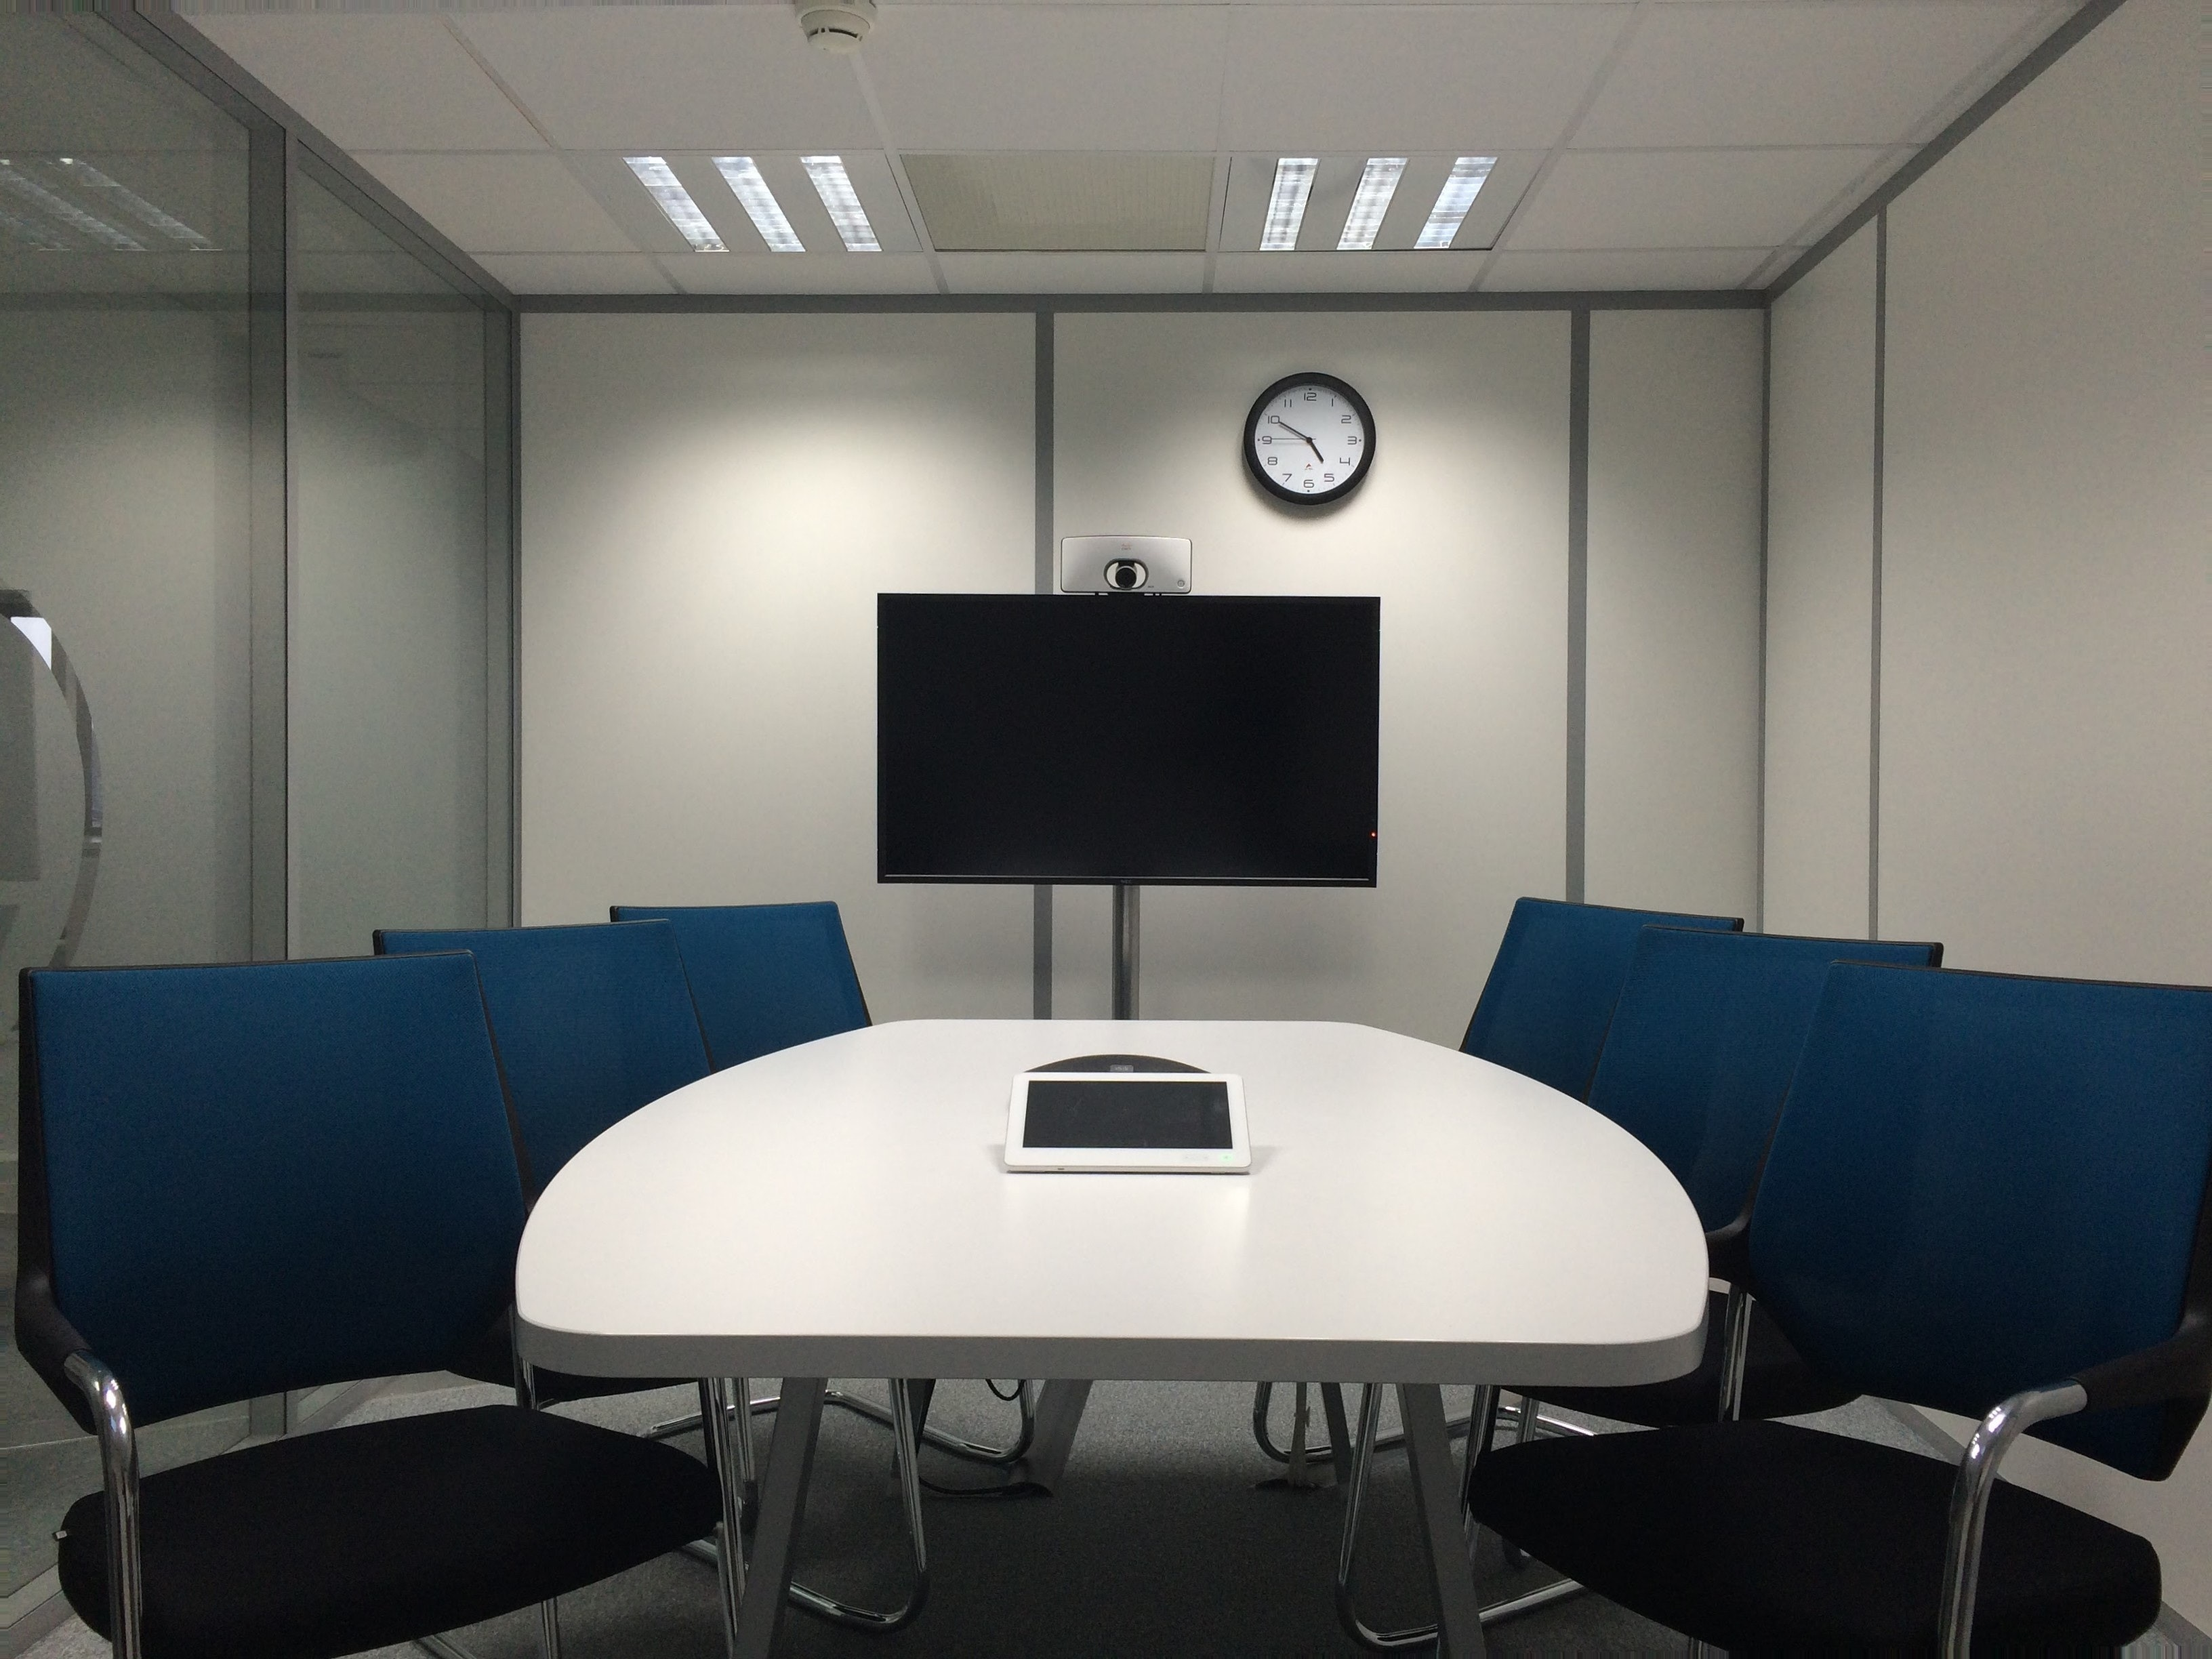 chairs-conference-room-corporate-236730-1